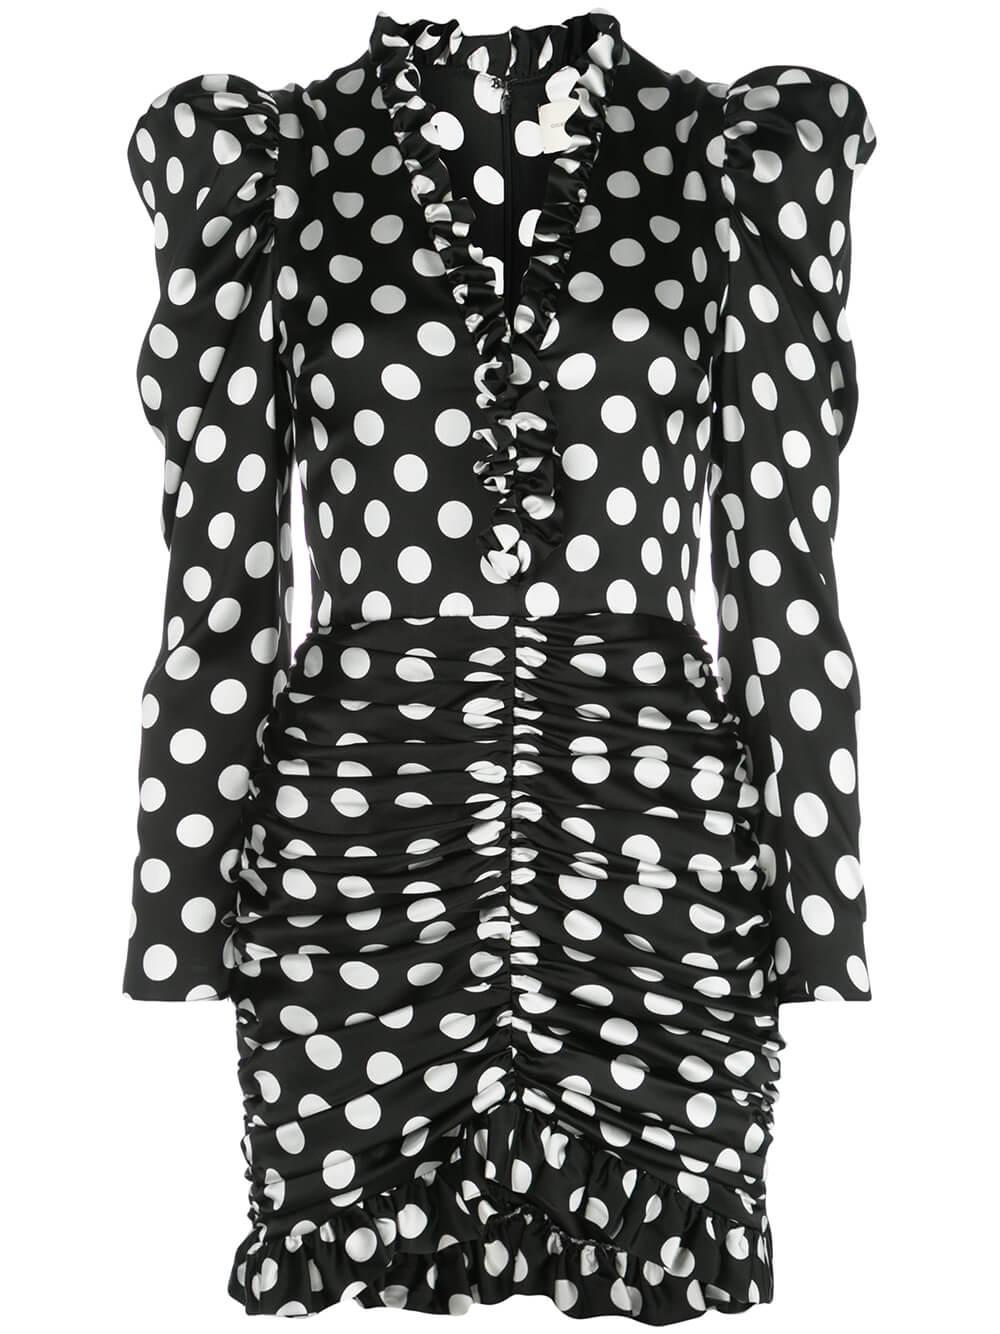 3/4 Sleeve V Neck Polka Dot Dress With Ruched